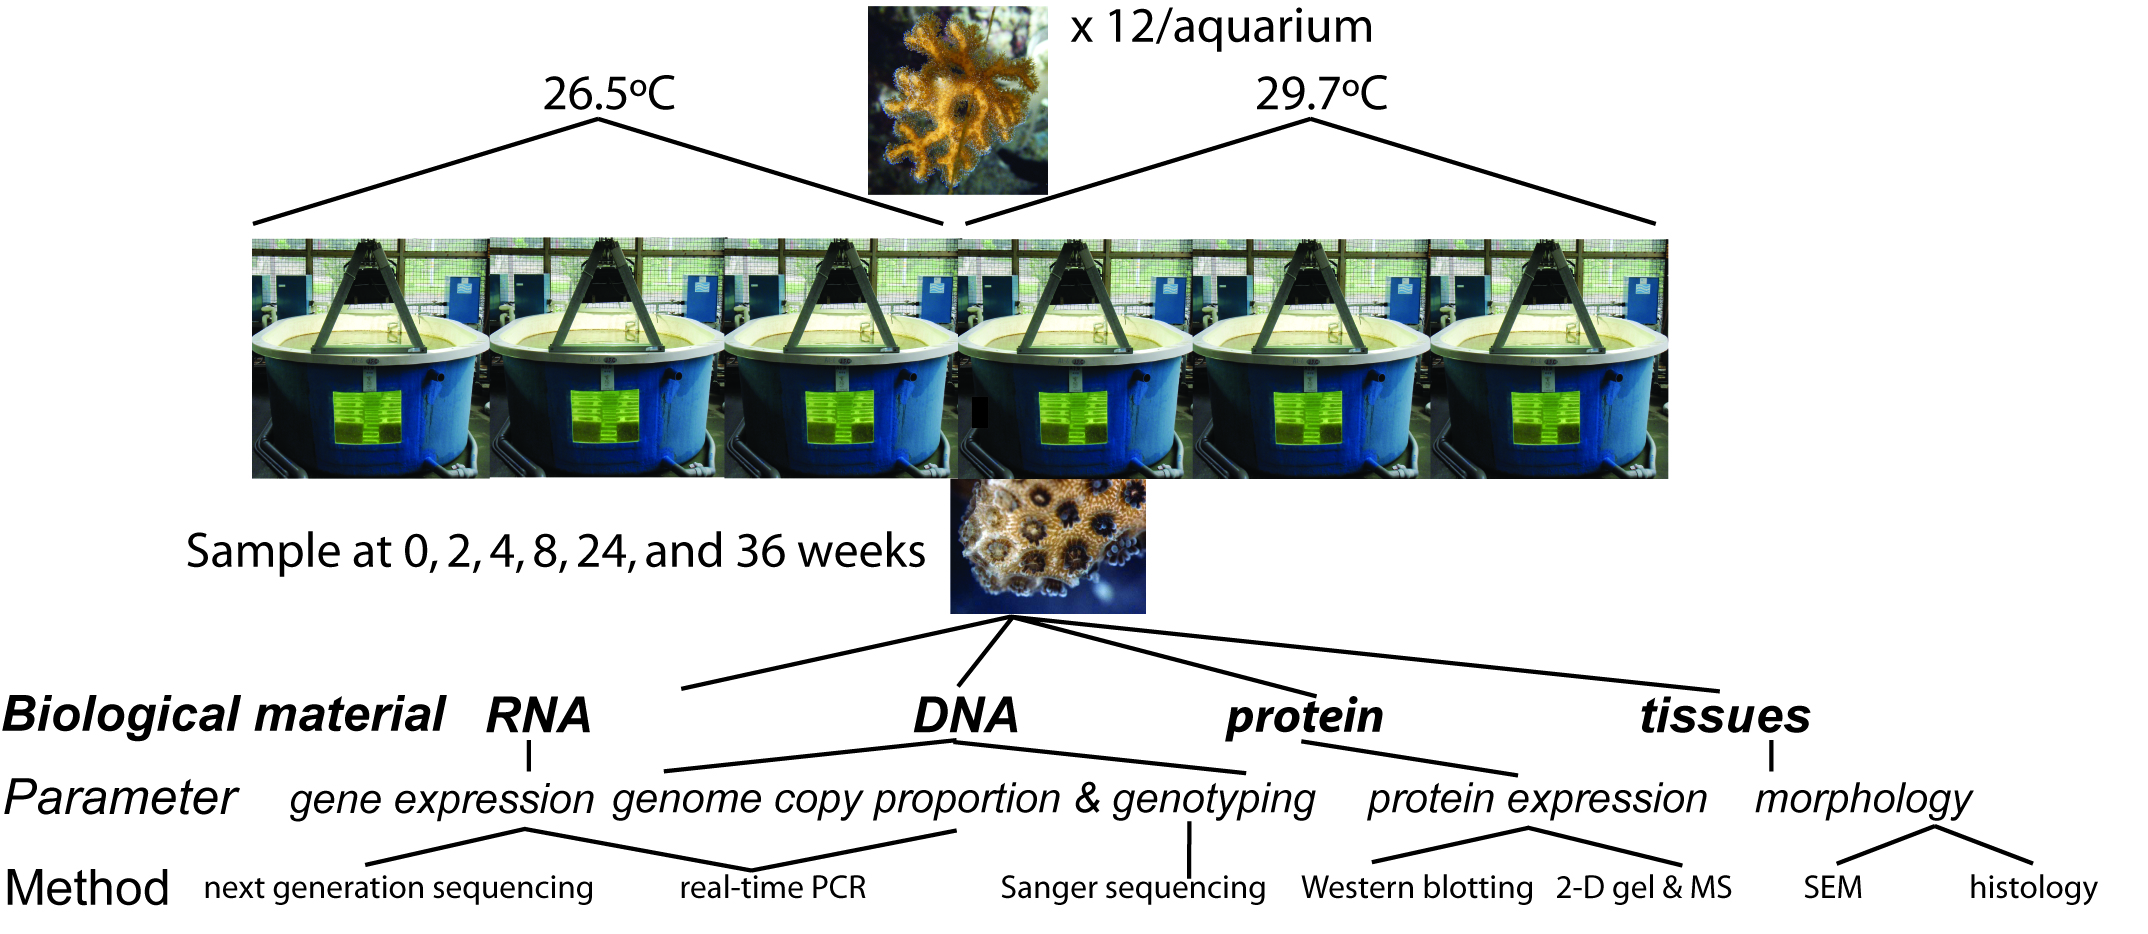 A summary of the experiment and the response variables assessed.  For the remaining proteomic samples,  iTRAQ  followed by nano-liquid chromatography and mass spectrometry (MS) will be used in place of 2-D gels+MS.